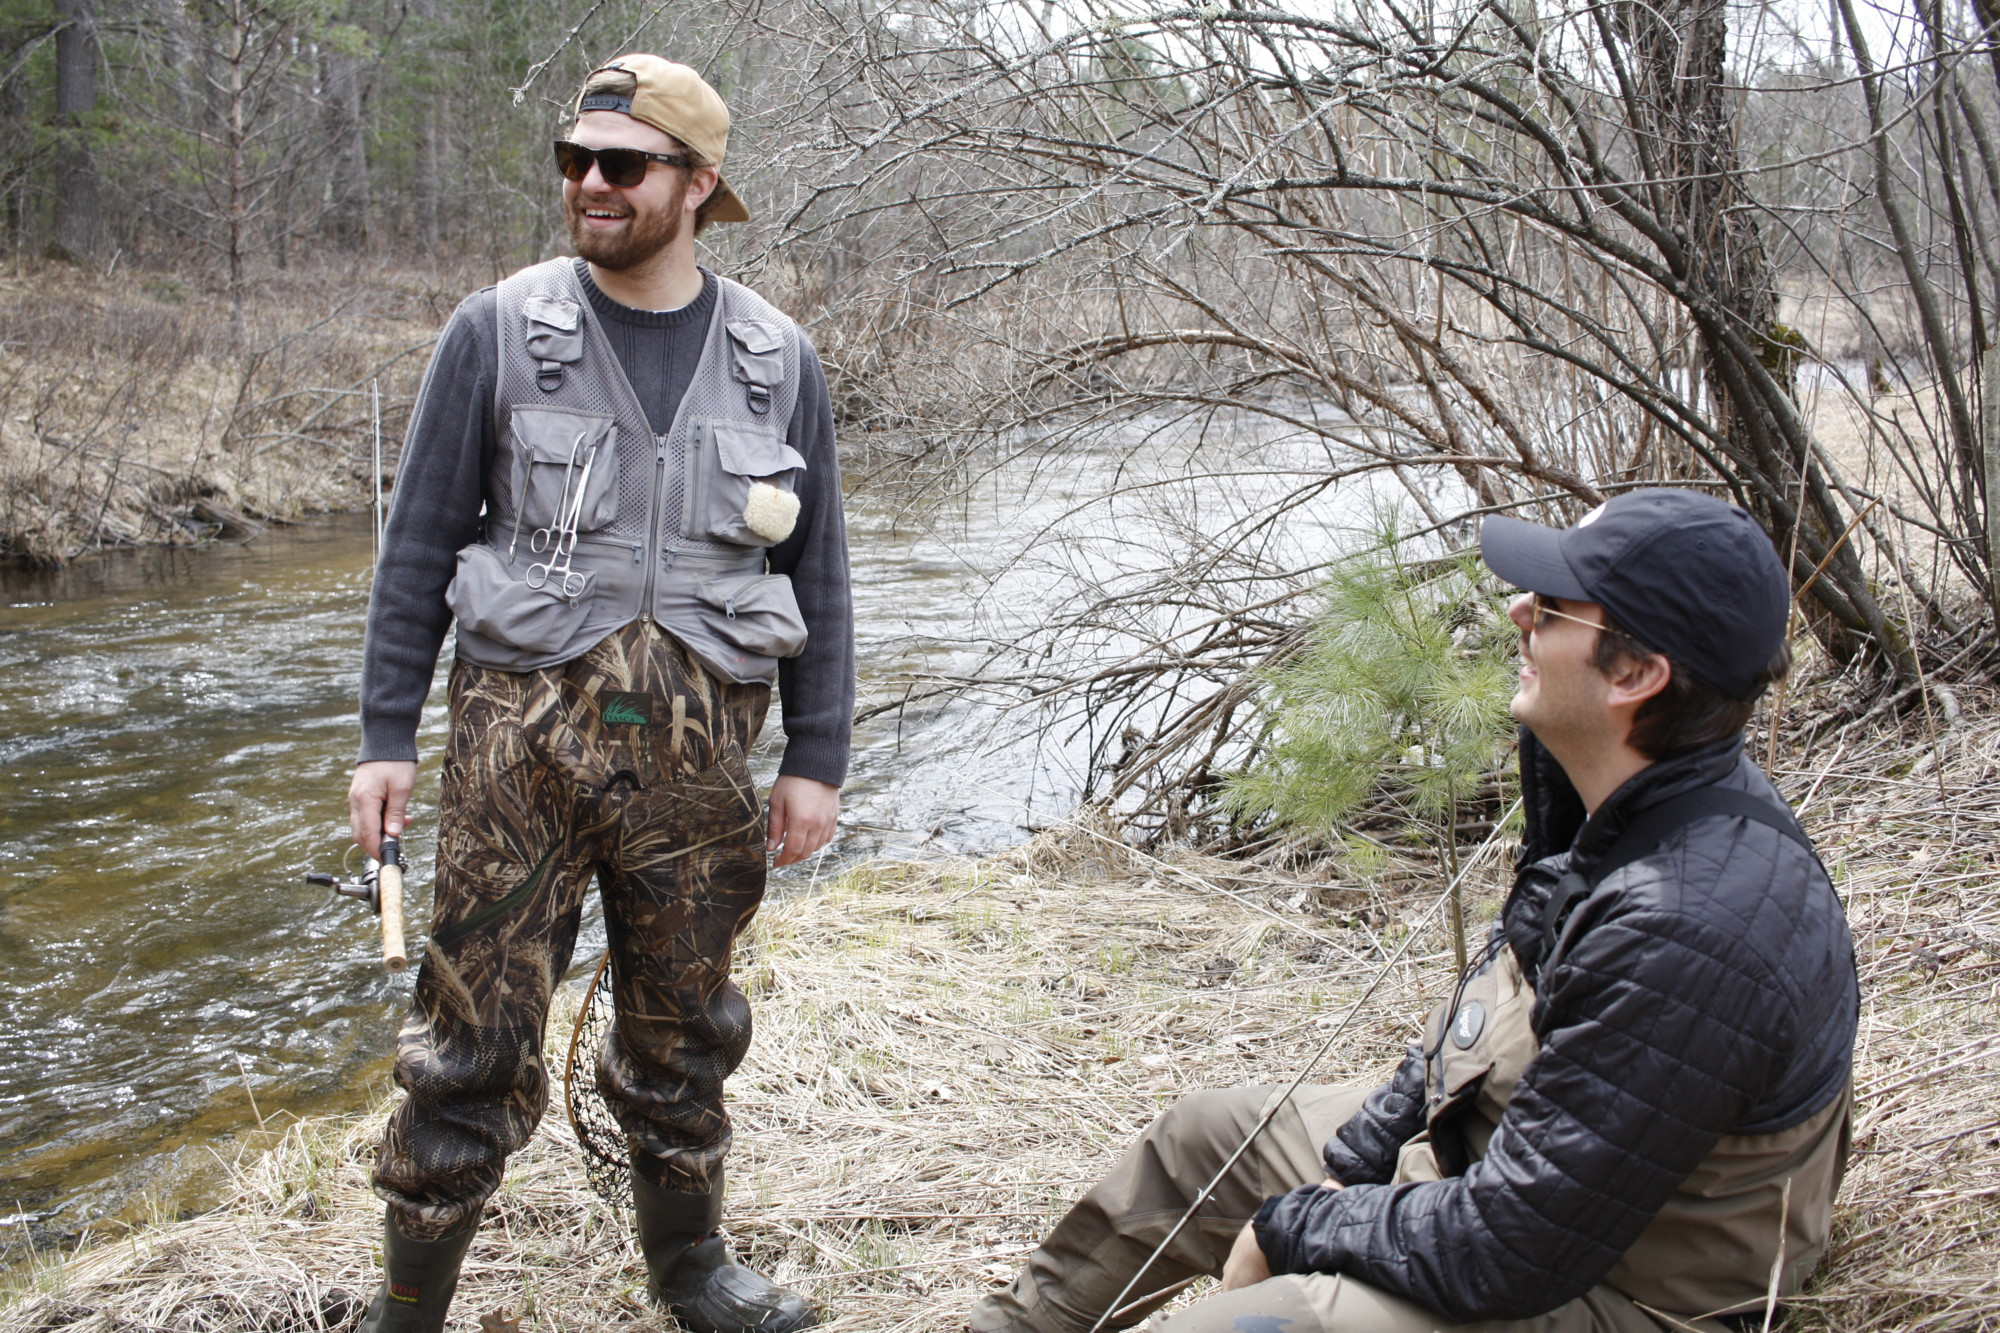 Two men talking in waders getting ready to go fishing.